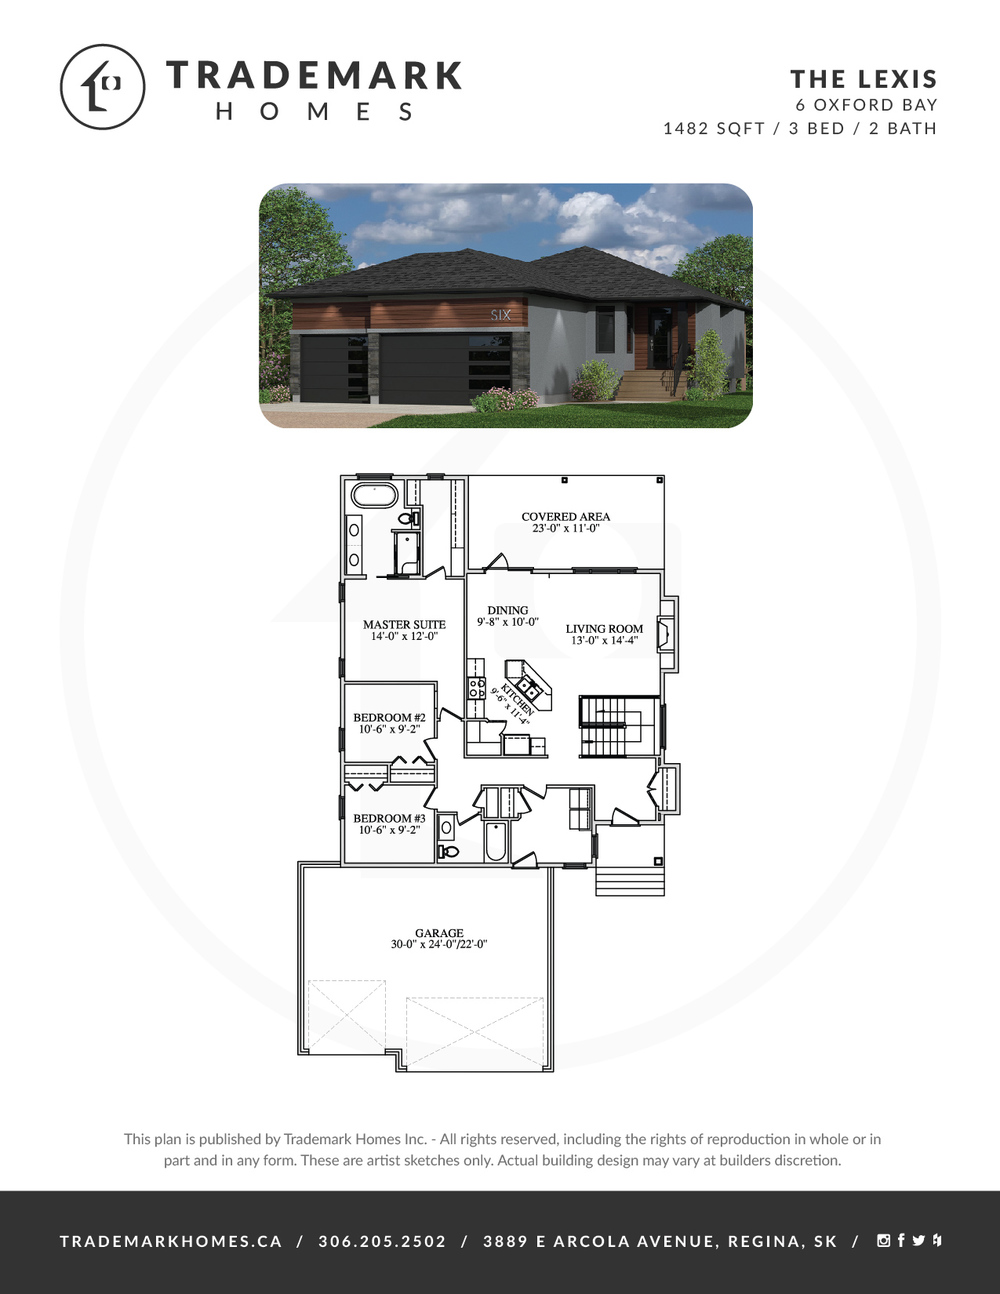 The Lexis - Floorplan - Oxford Bay - White City